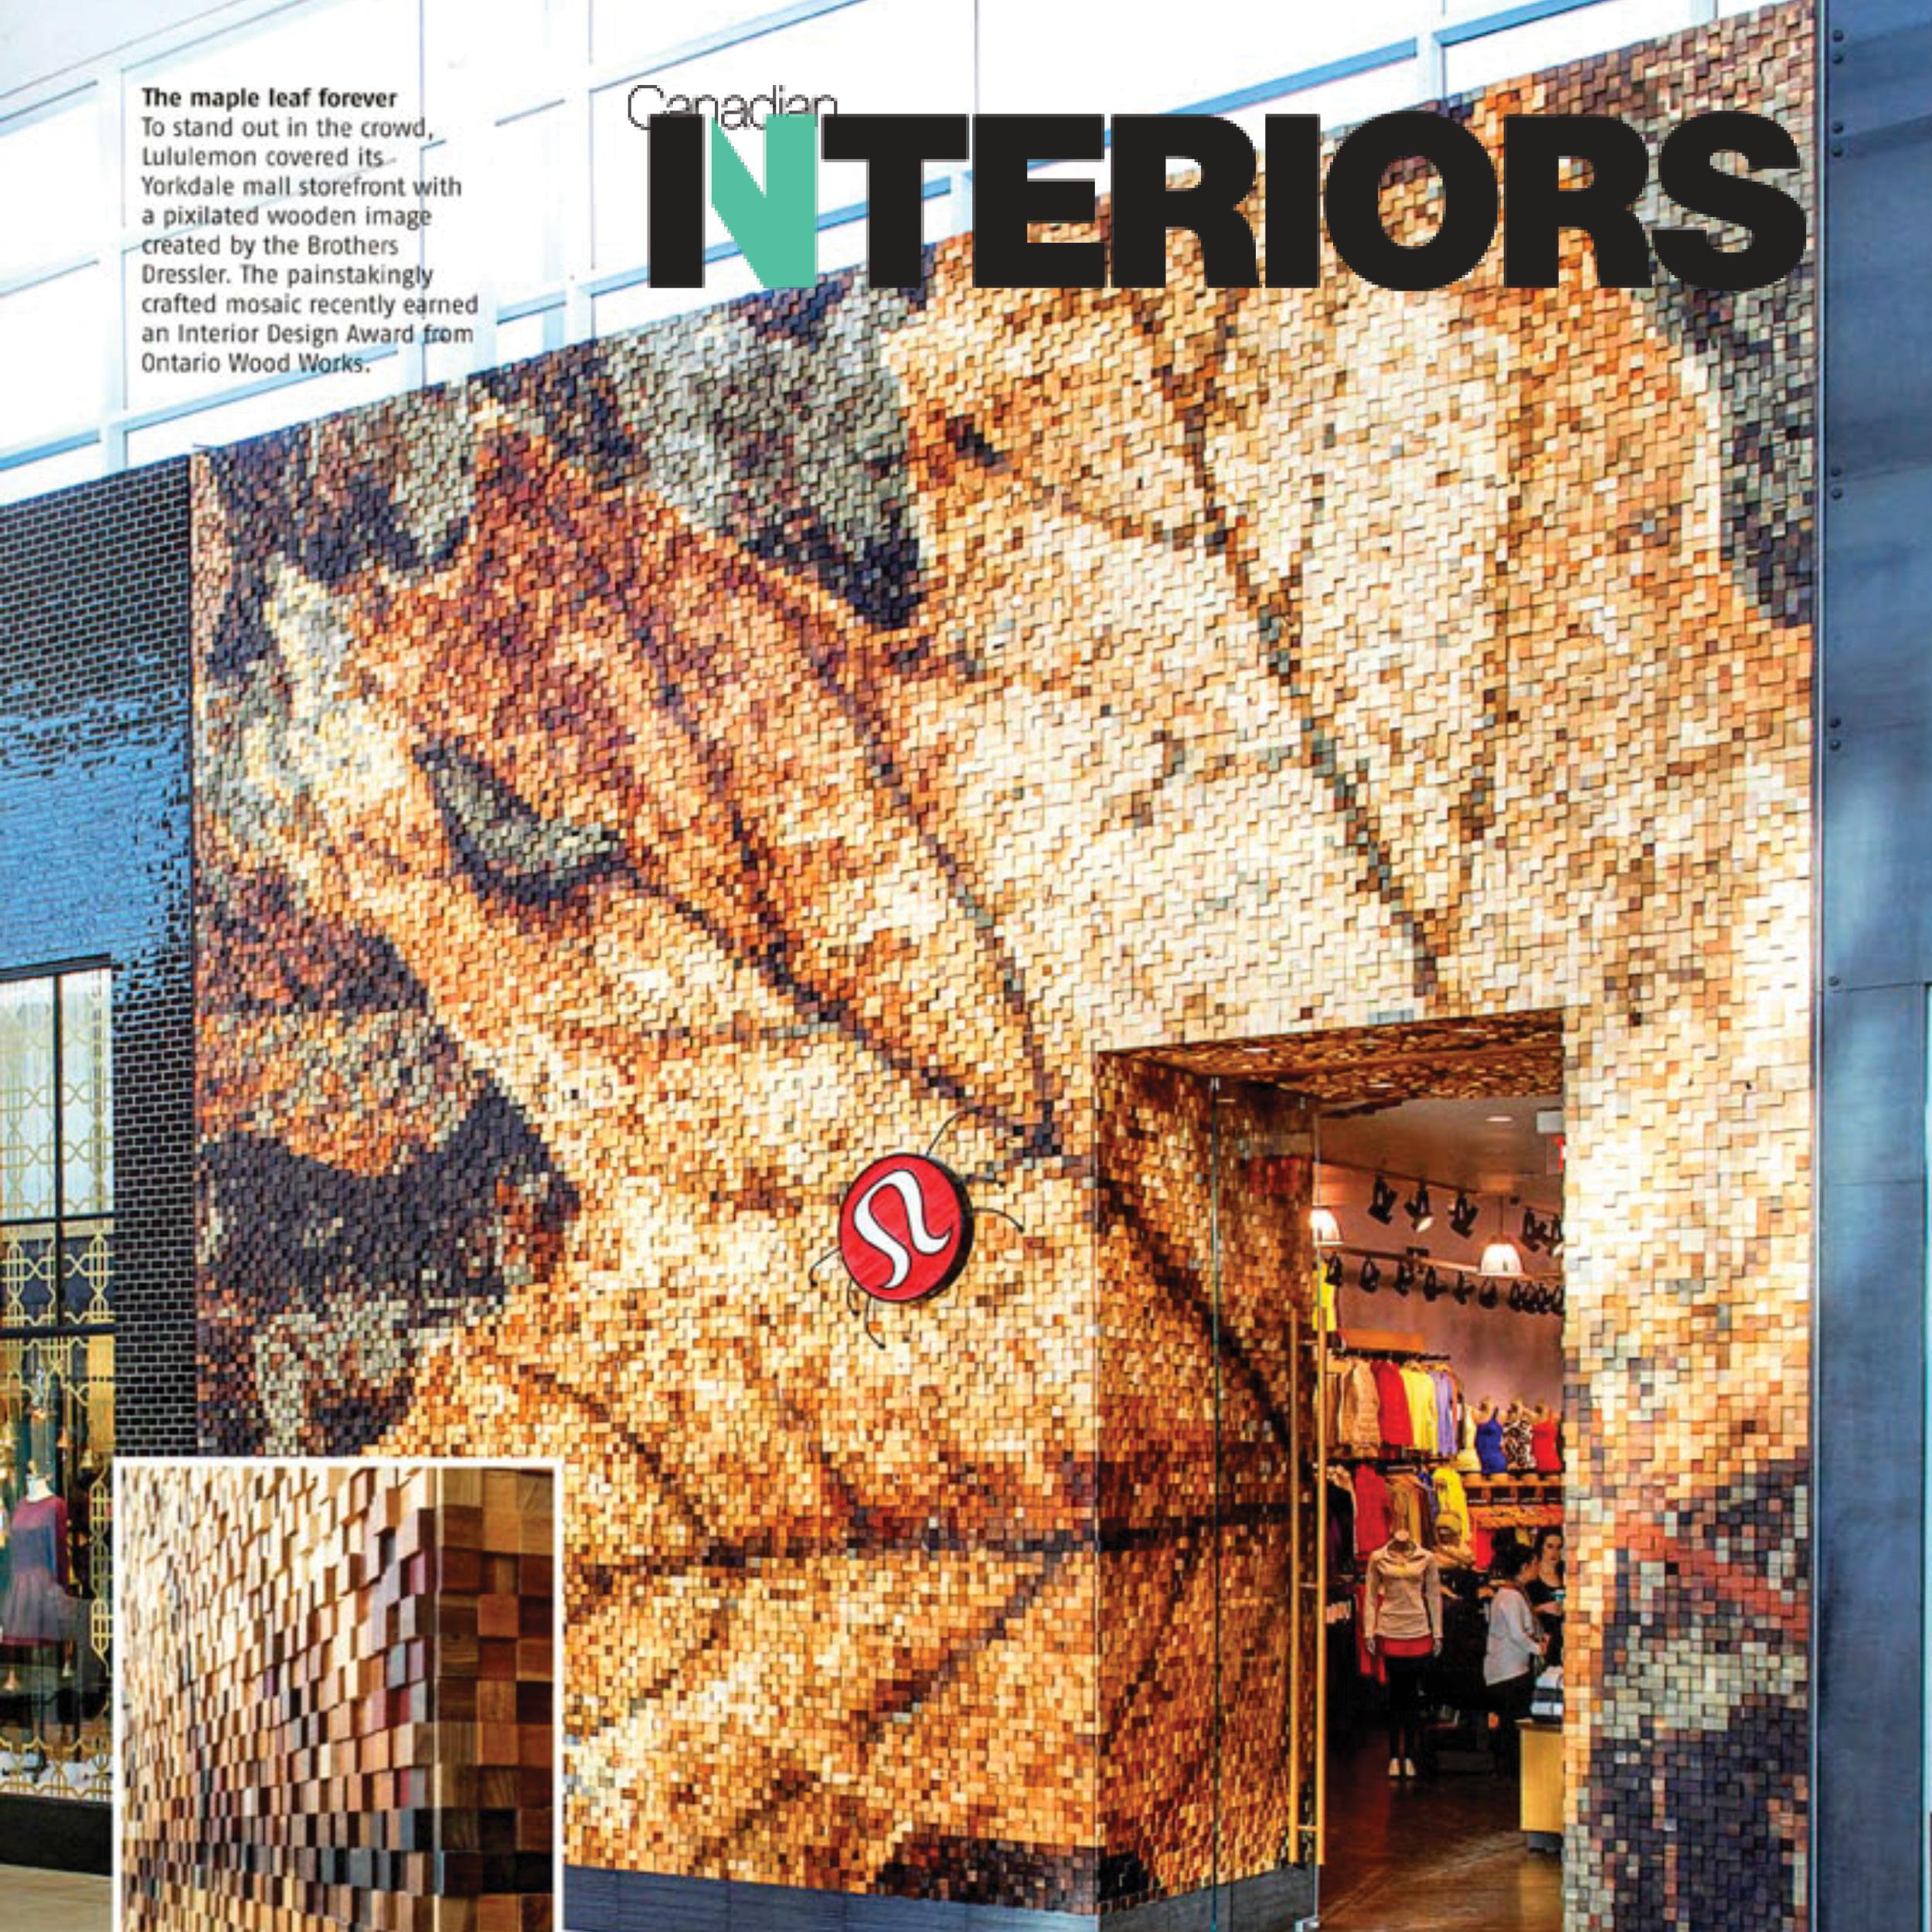 facade of the Lululemon Yorkdale location, showing a maple leaf made out of wooden squares